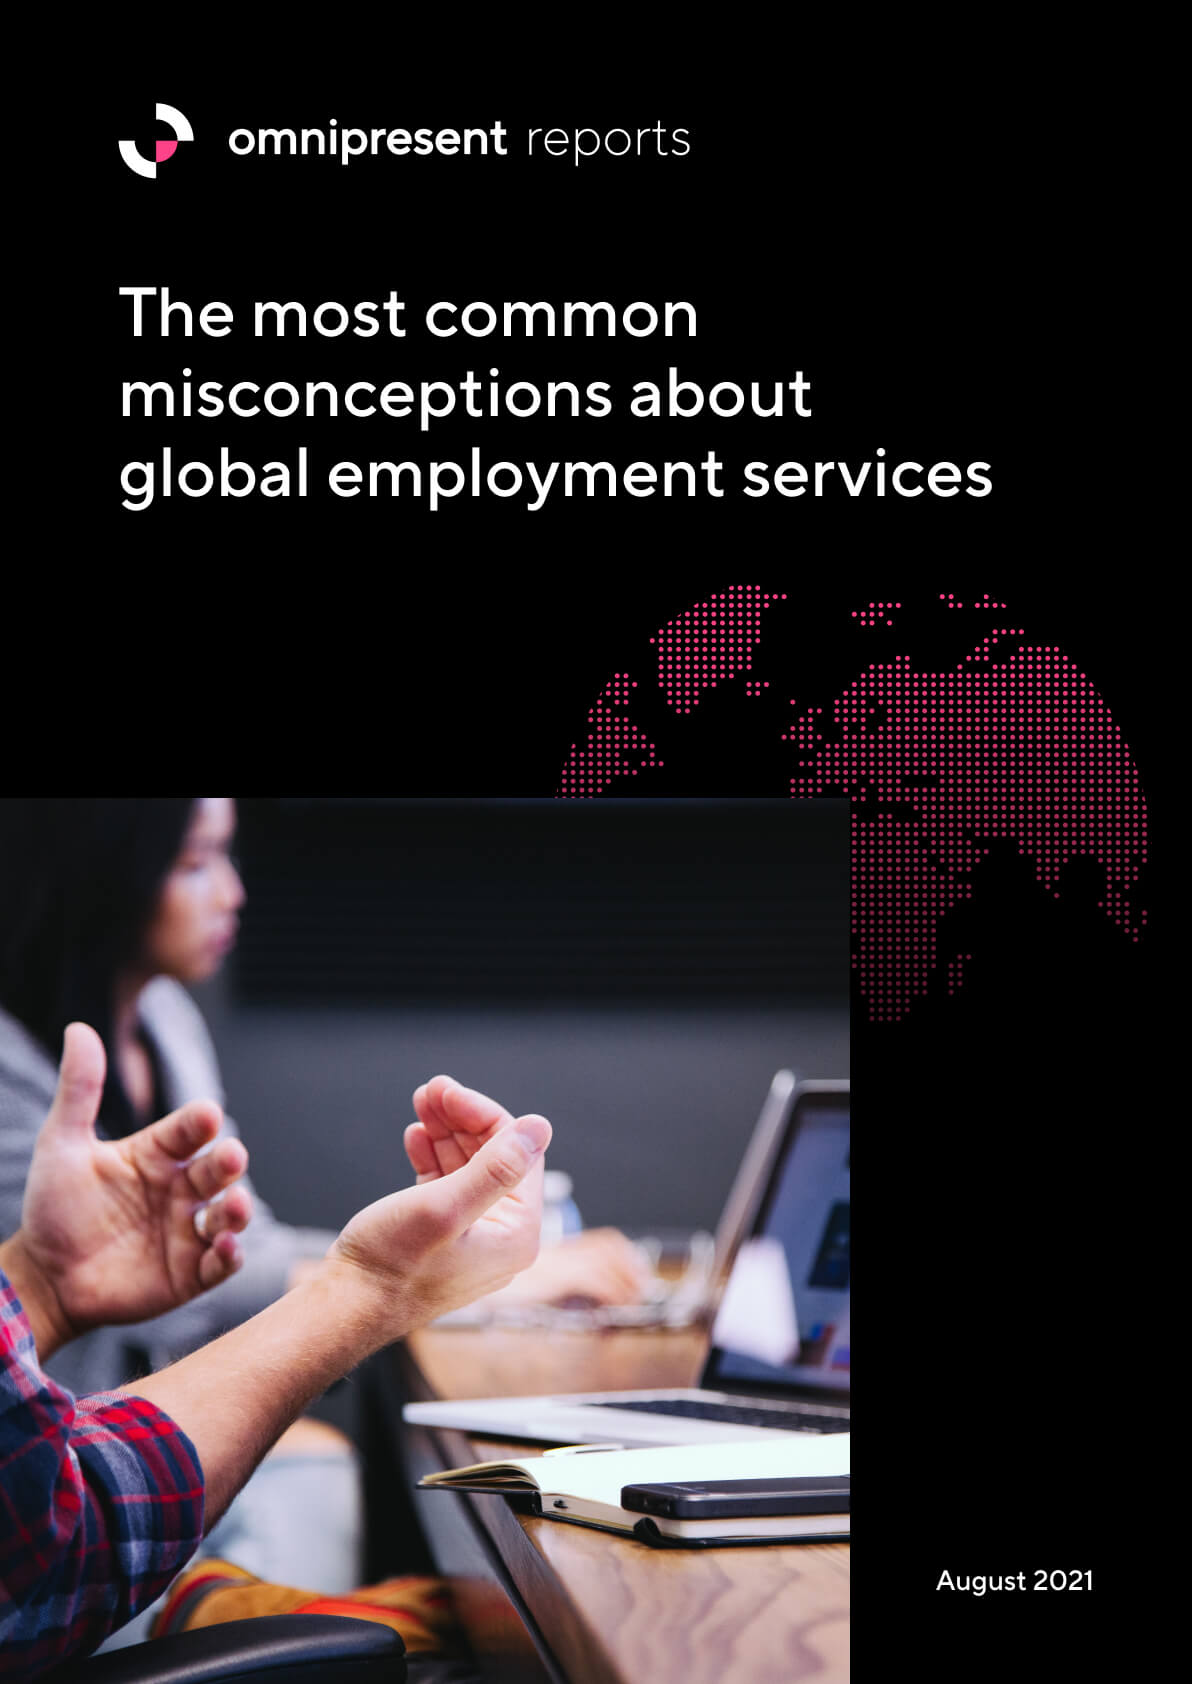 The most common misconceptions about global employment services